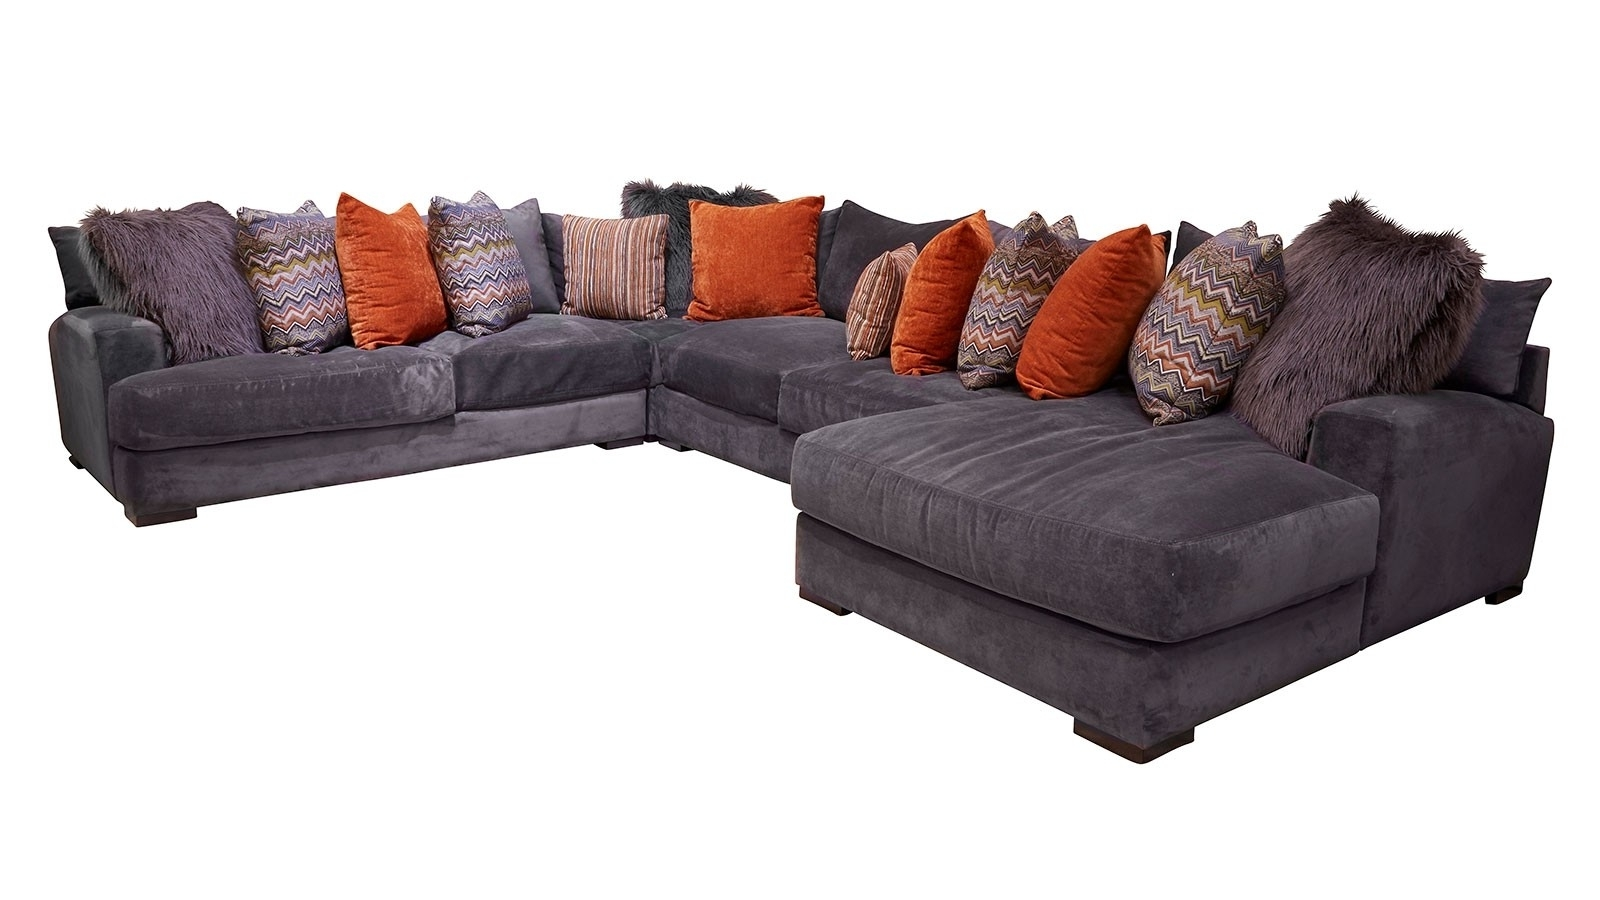 Gallery Furniture With Regard To Newest Gallery Furniture Sectional Sofas (View 15 of 20)